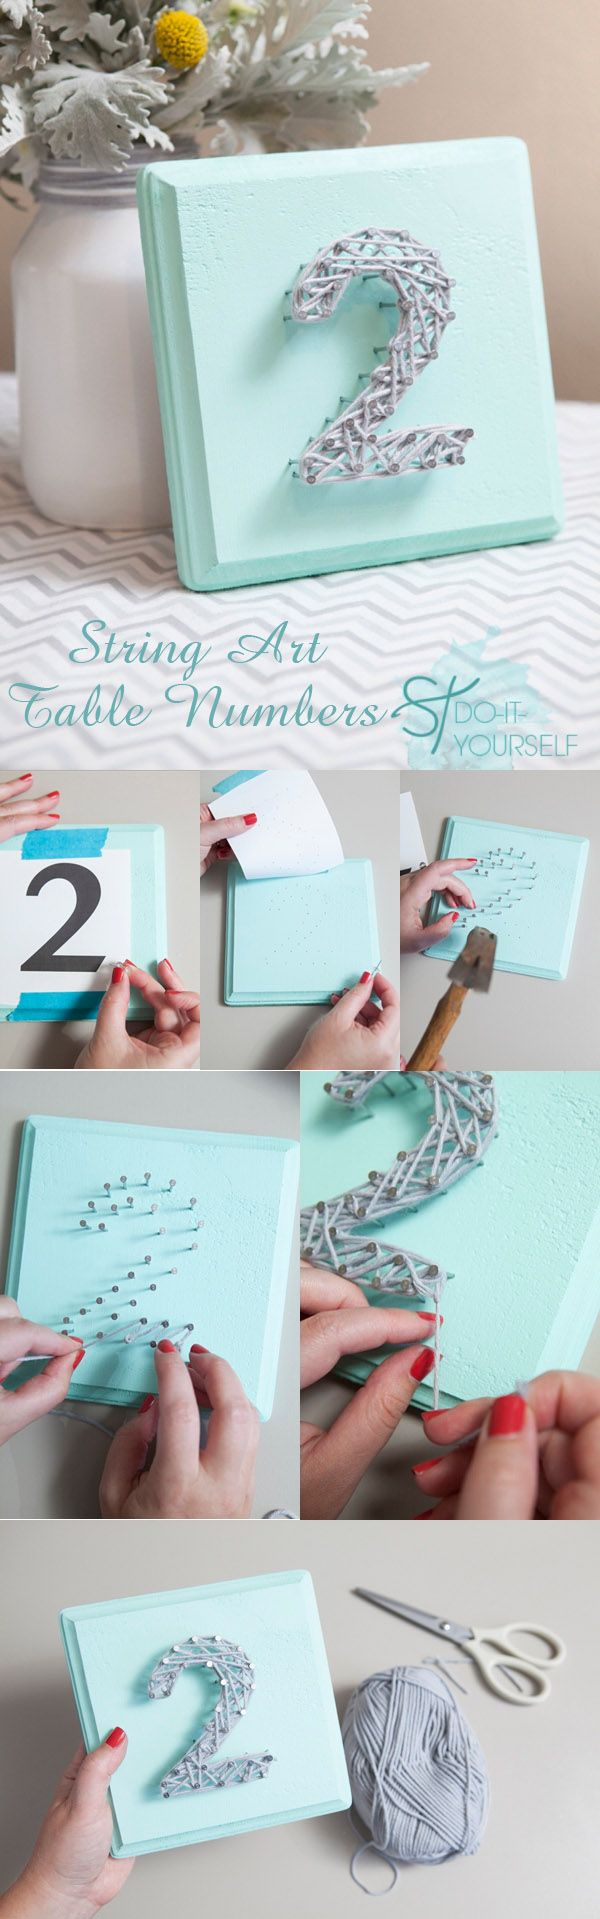 diy string art wedding table number ideas